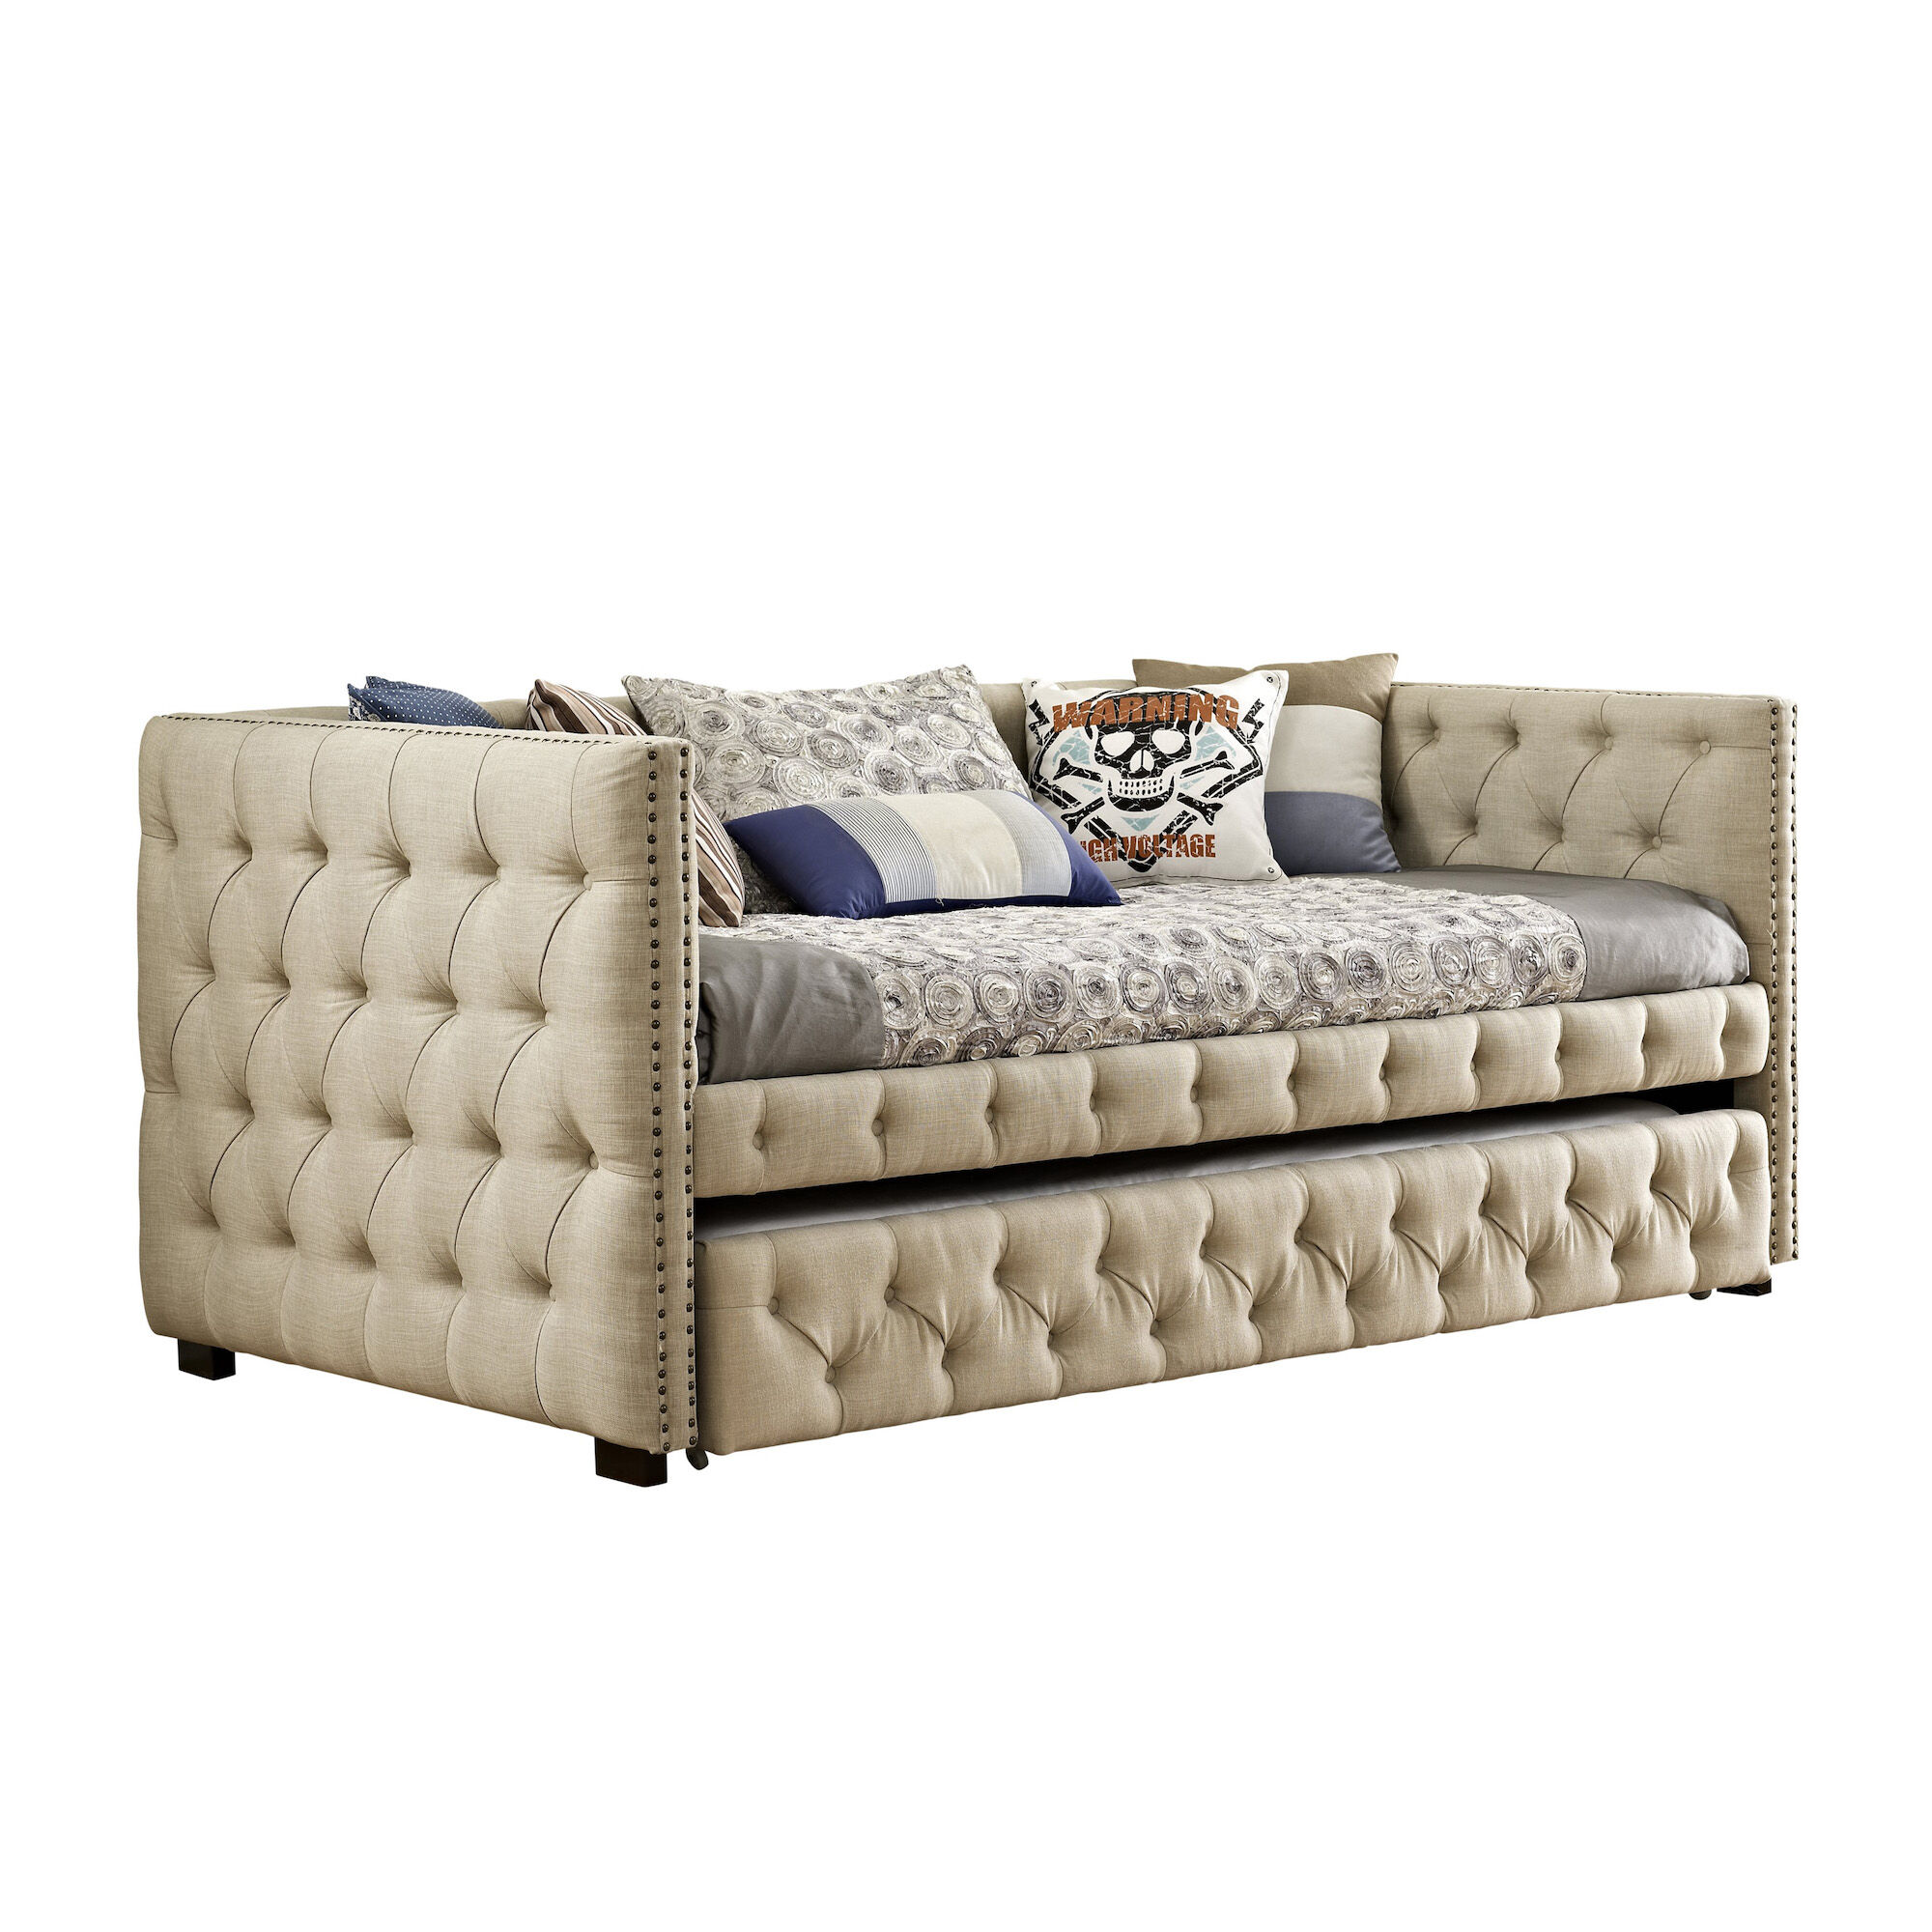 Elements Bedroom Groups Janell Daybed Natural